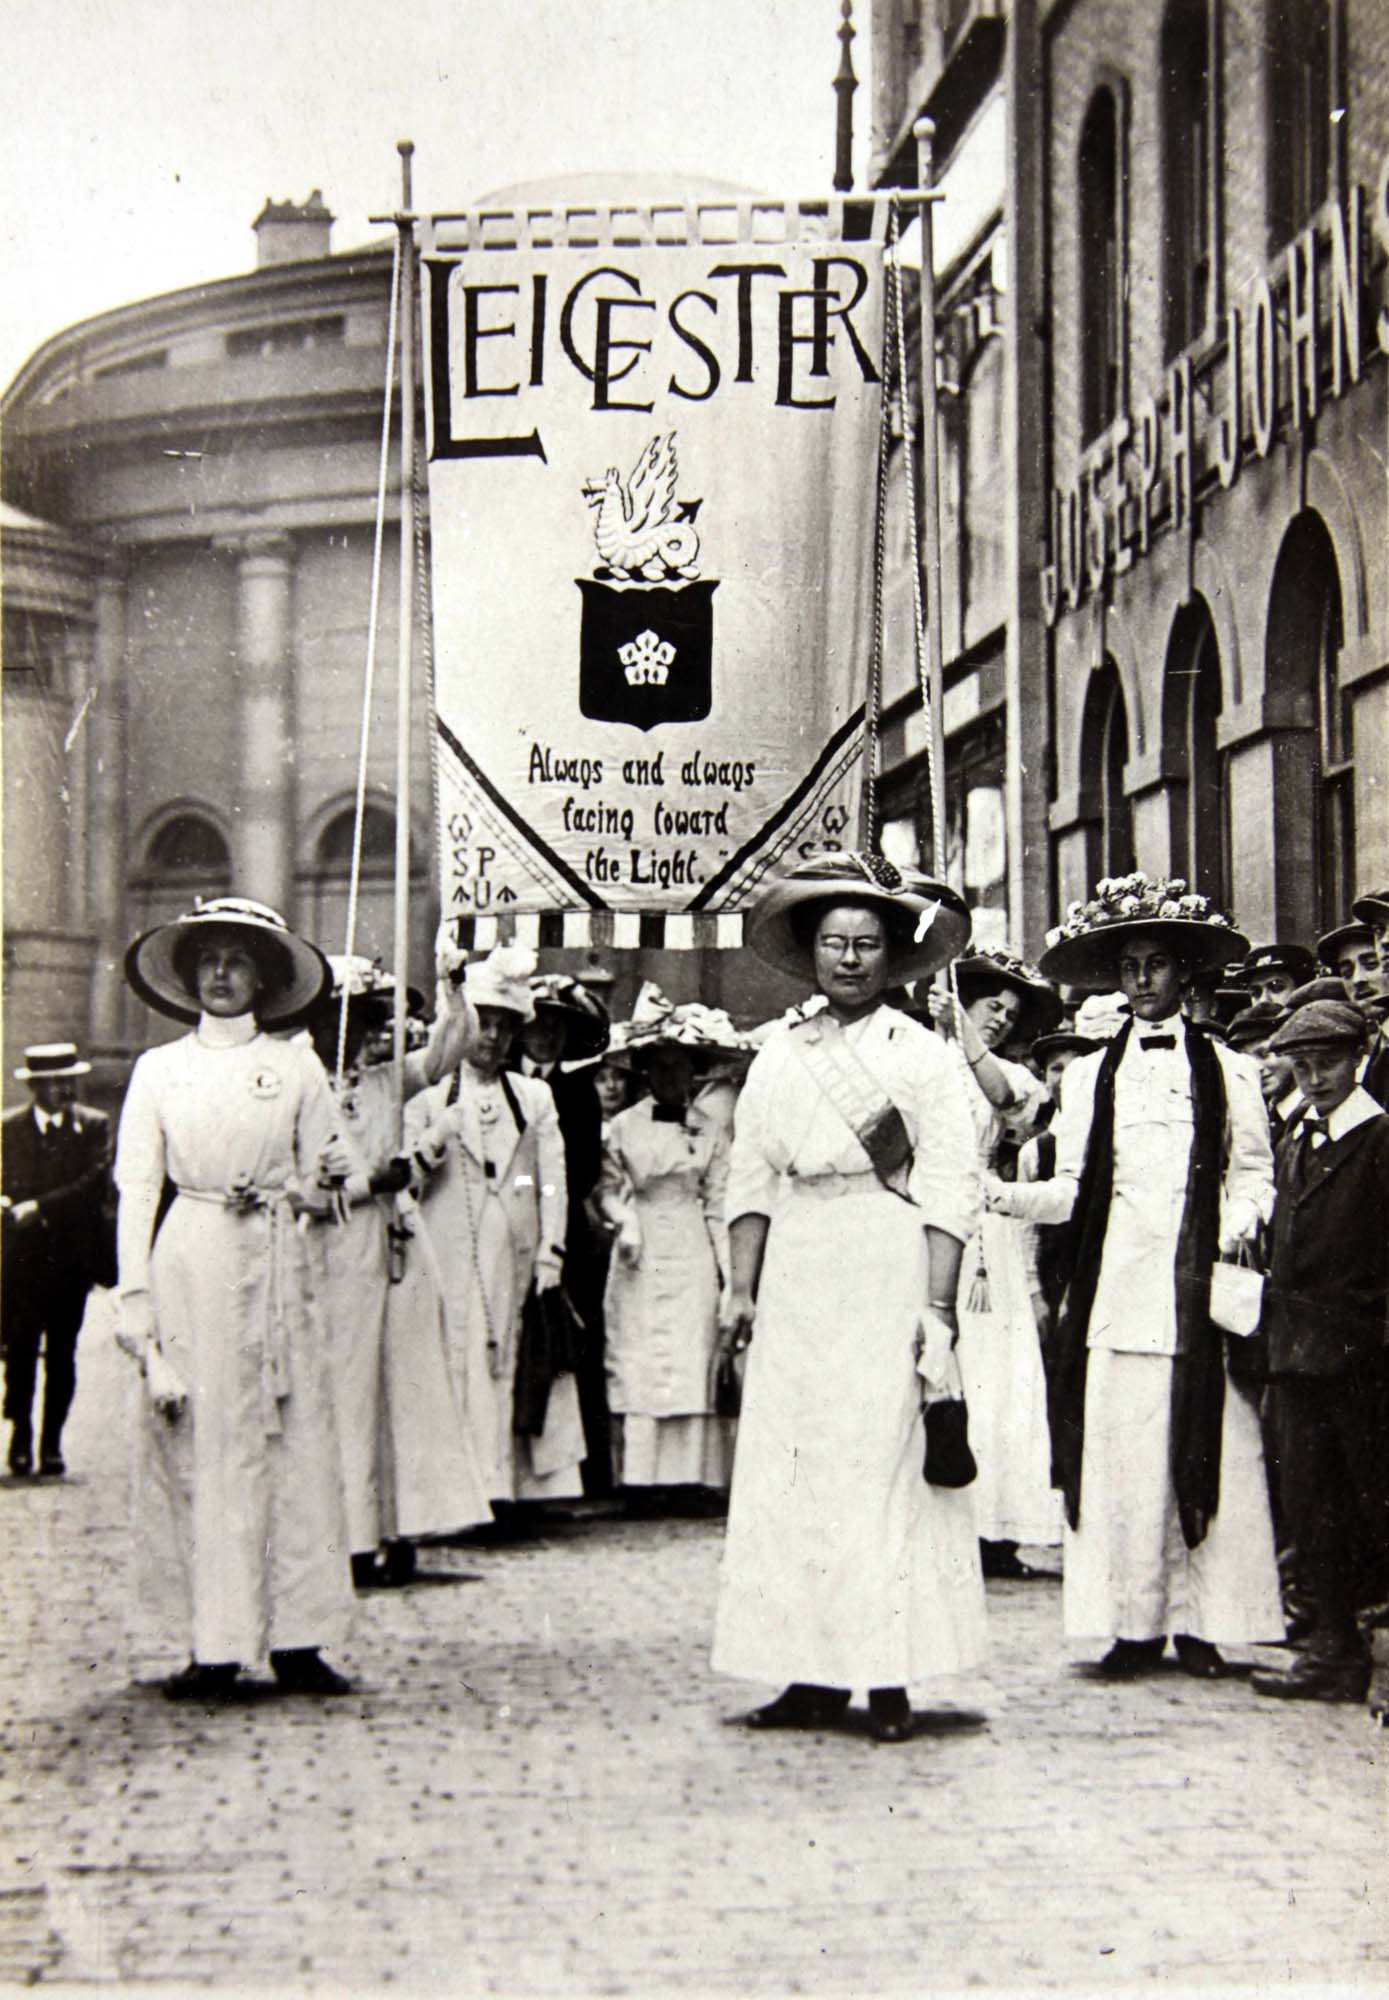 Leicester Suffragettes demonstration in Bowling Green Street May 1911 - Leicestershire Record Office